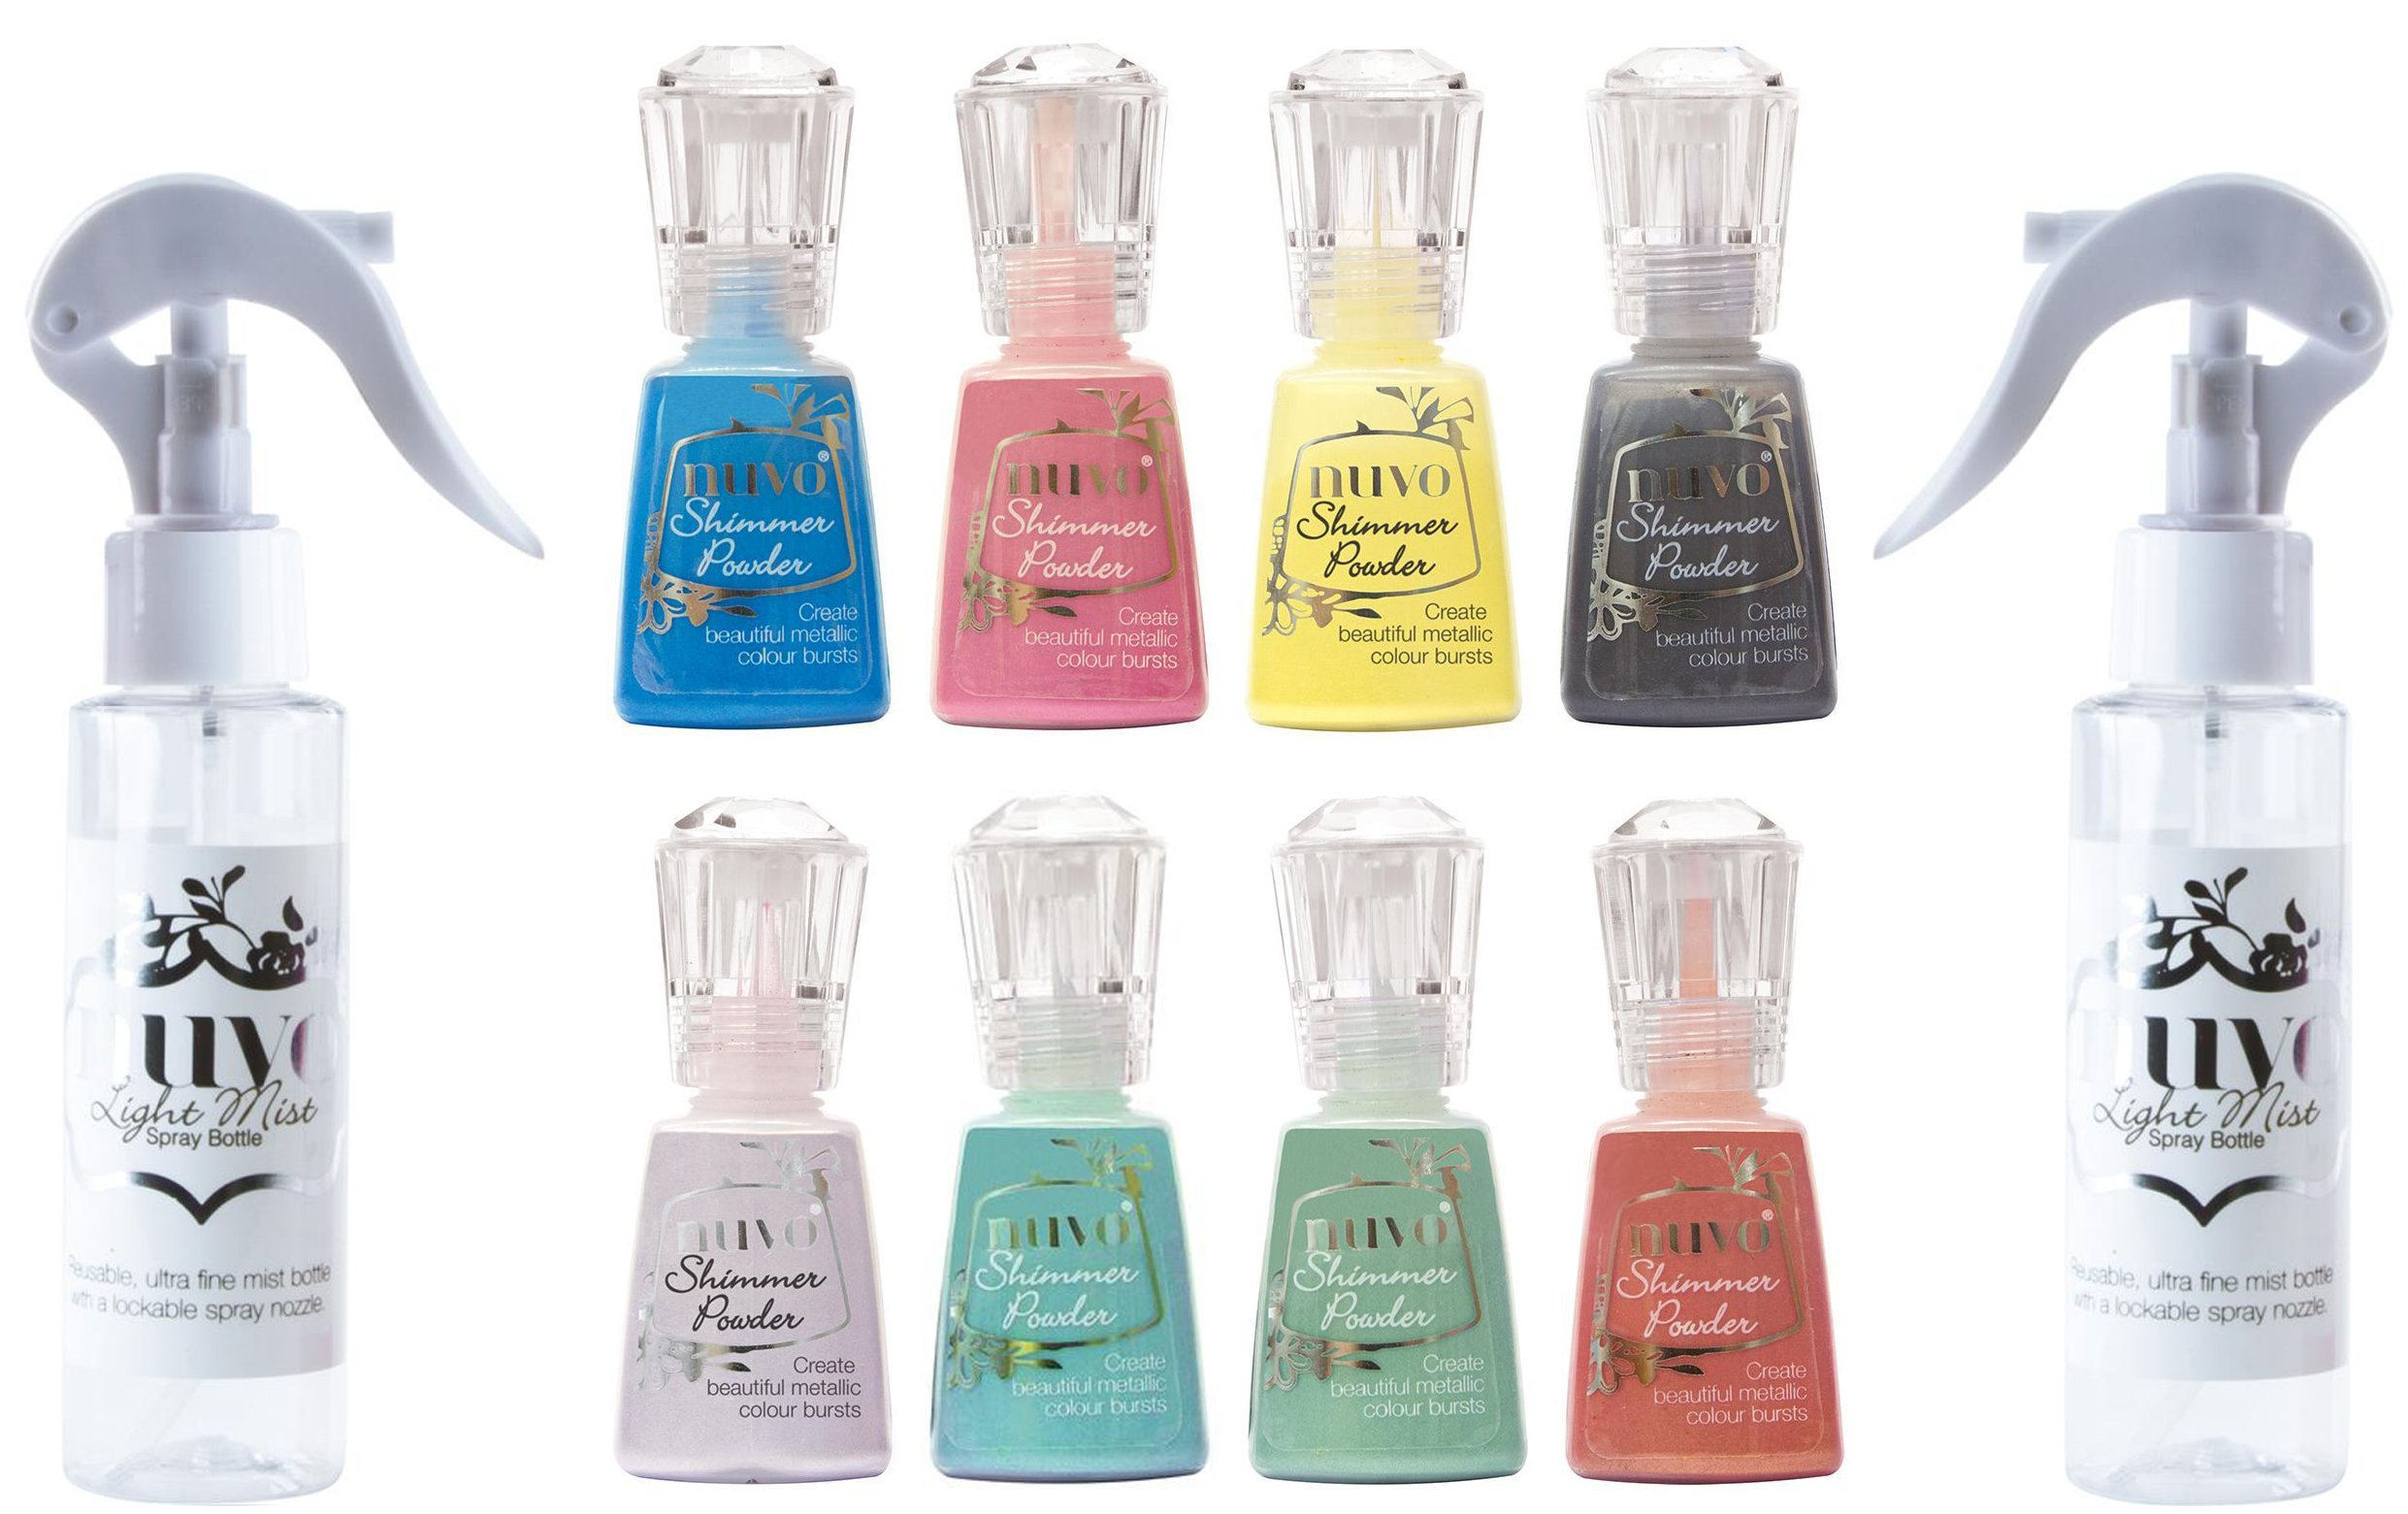 Tonic Studios Nuvo Shimmer Powder Block and Multi-Colors 2018 Complete Set with Light Mist Spray Bottles - 10 Item Bundle